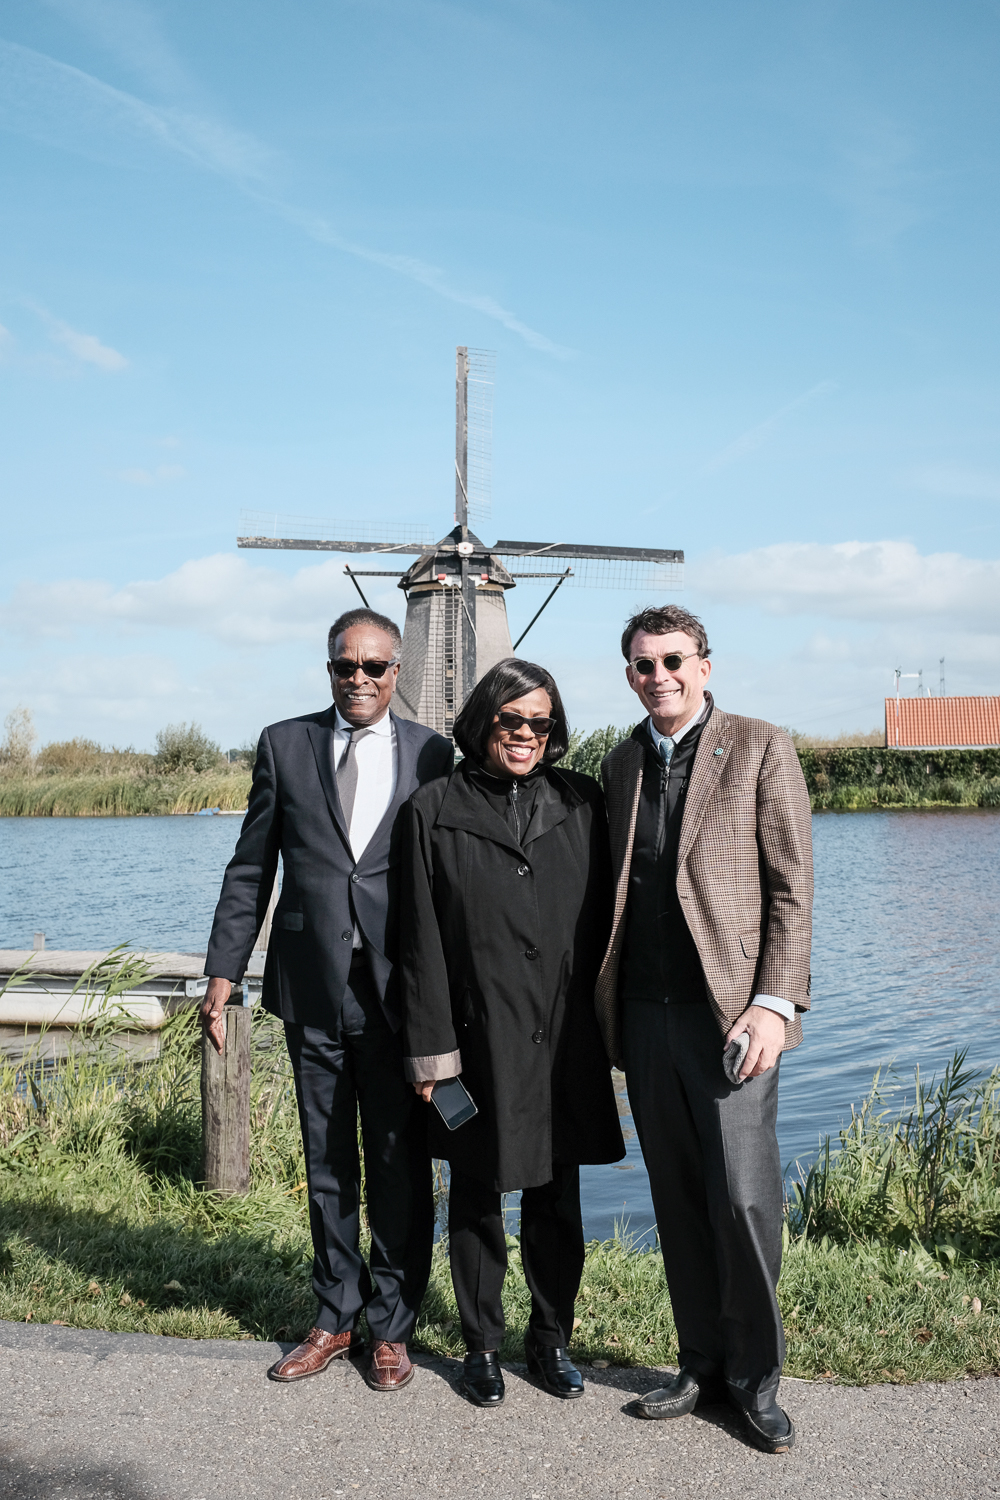 Council-members Dudley Gregorie and Michael Seekings with Baton Rouge Mayor-President Sharon Weston Broome at the Kinderjink World Heritage Site